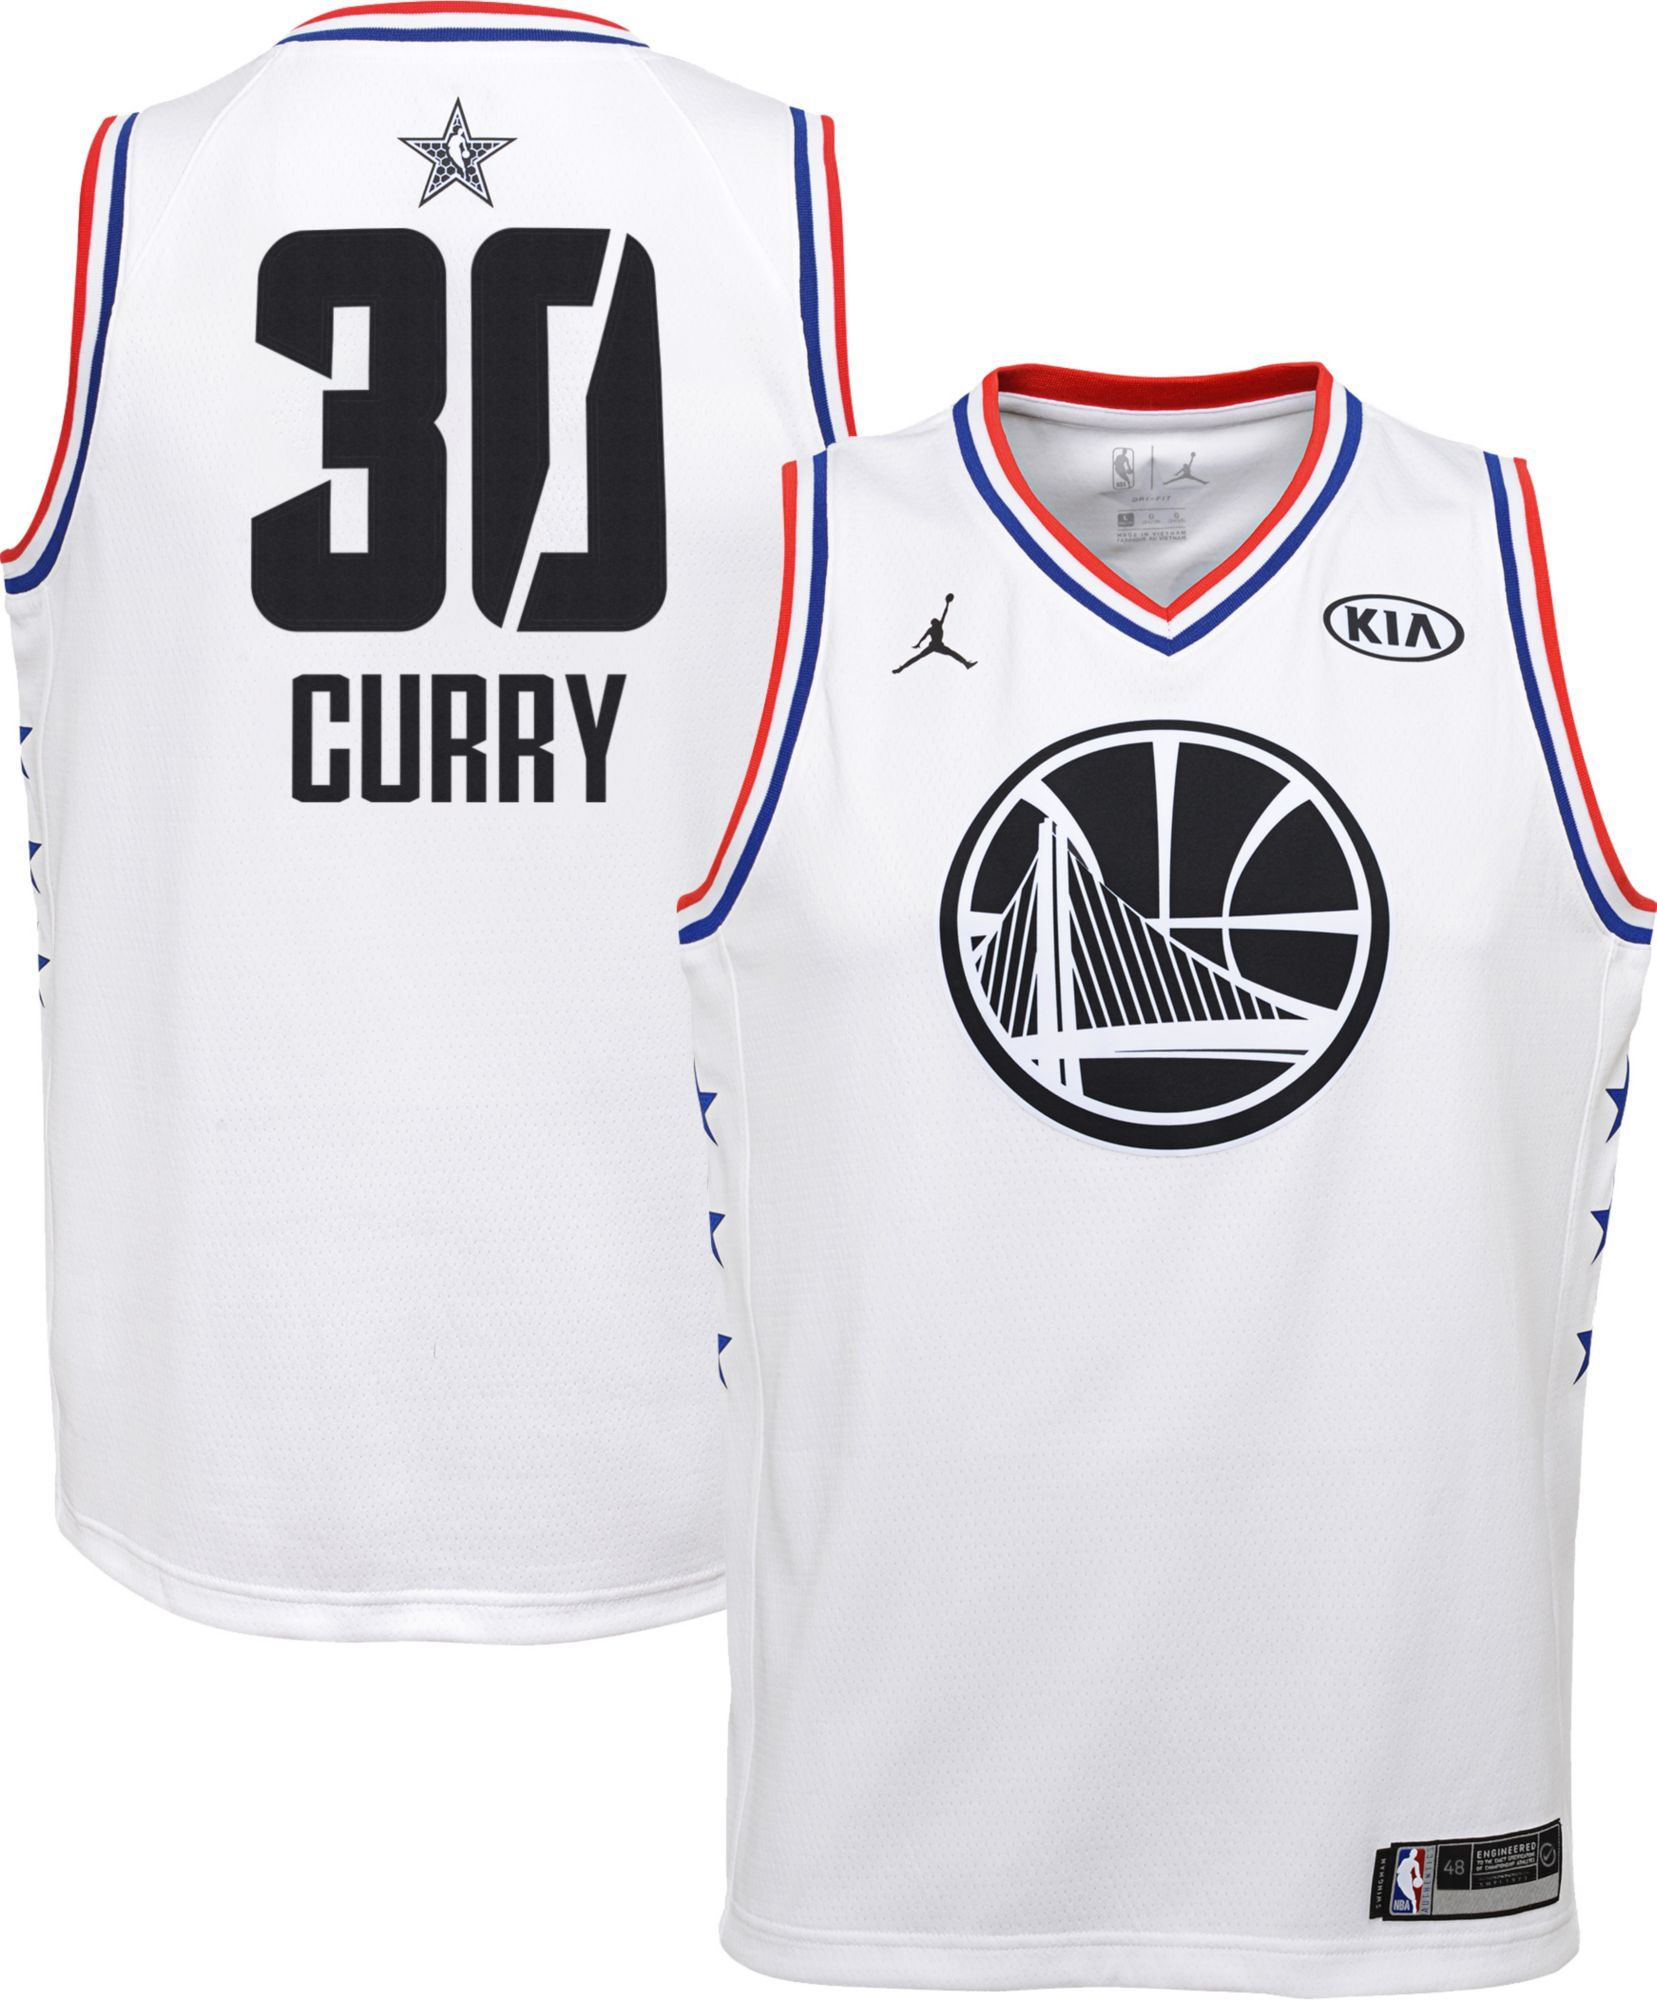 773e16b85fe Jordan Youth 2019 NBA All-Star Game Steph Curry White Dri-FIT Swingman  Jersey, Boy's, Size: Medium